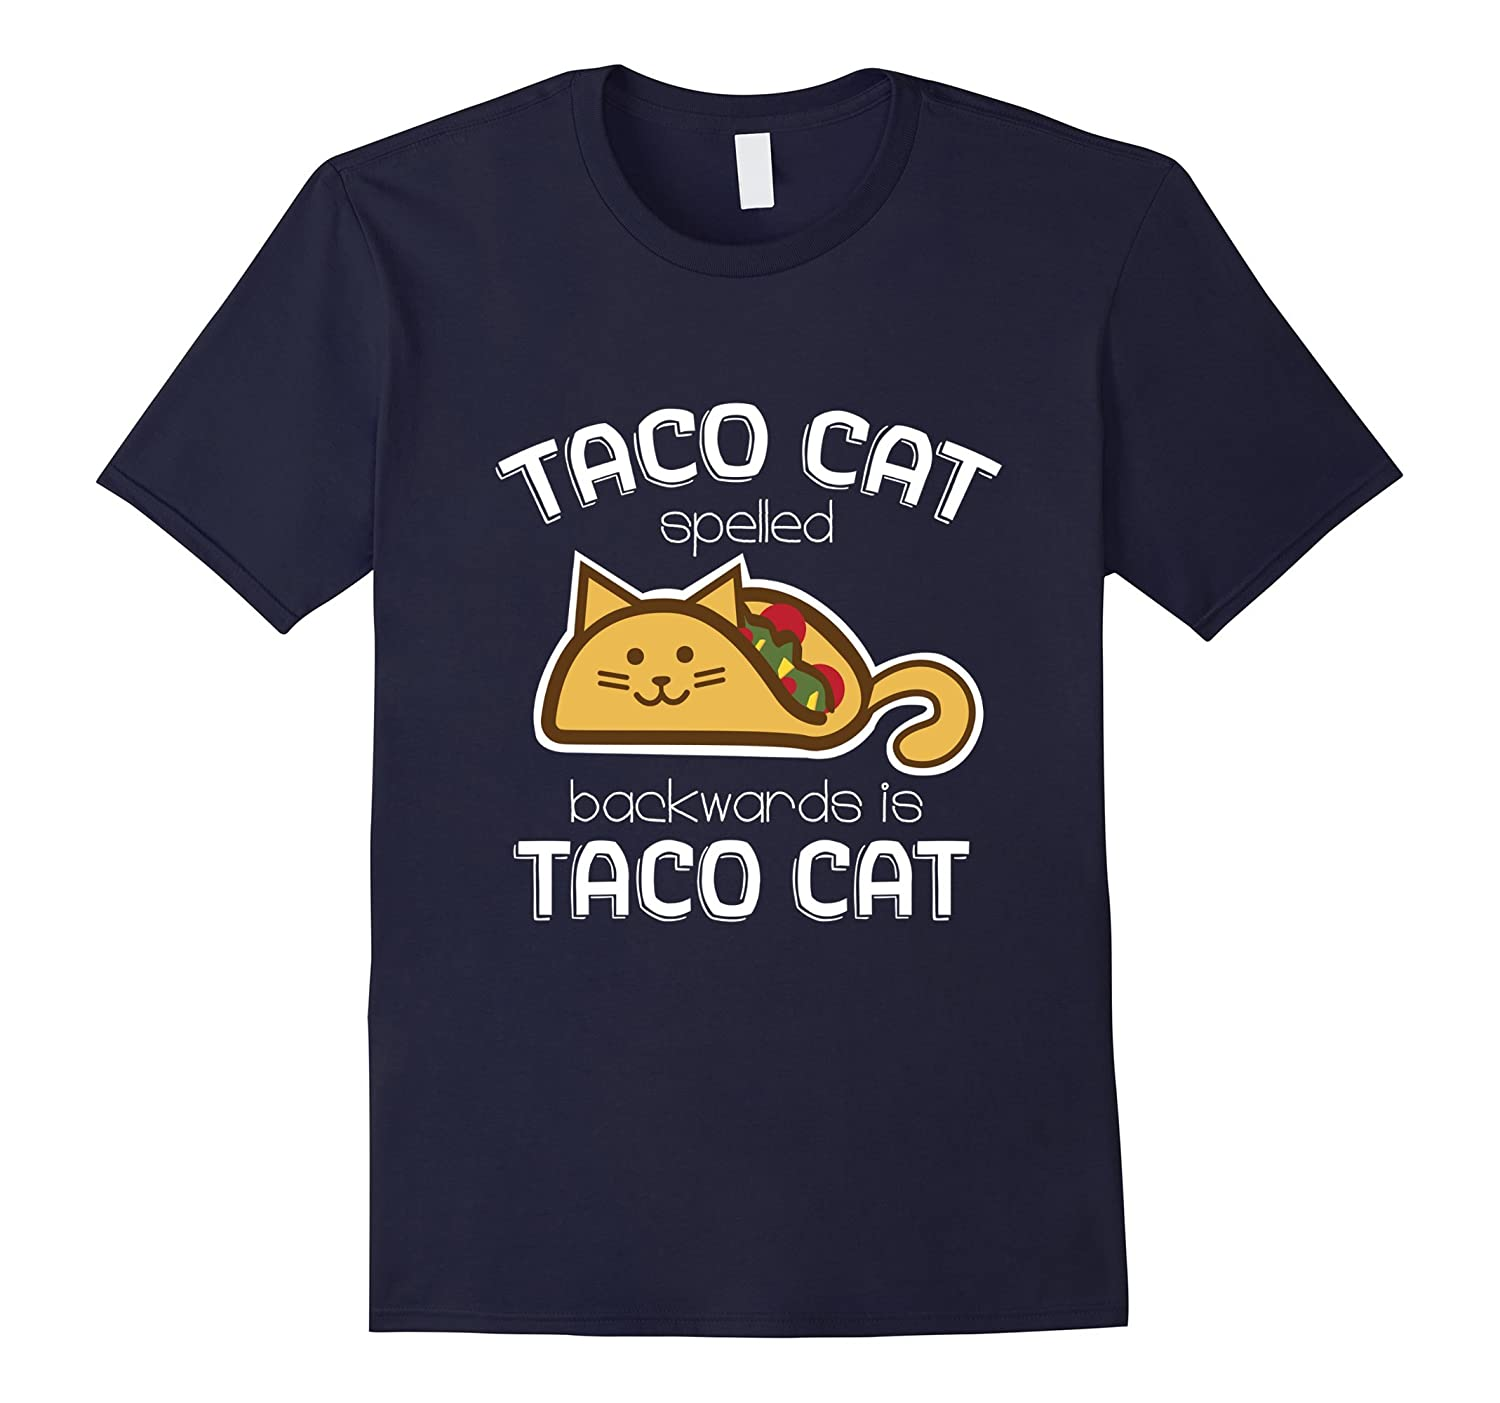 Taco Cat Spelled Backwards Is Taco Cat - Funny Taco Shirt-CD